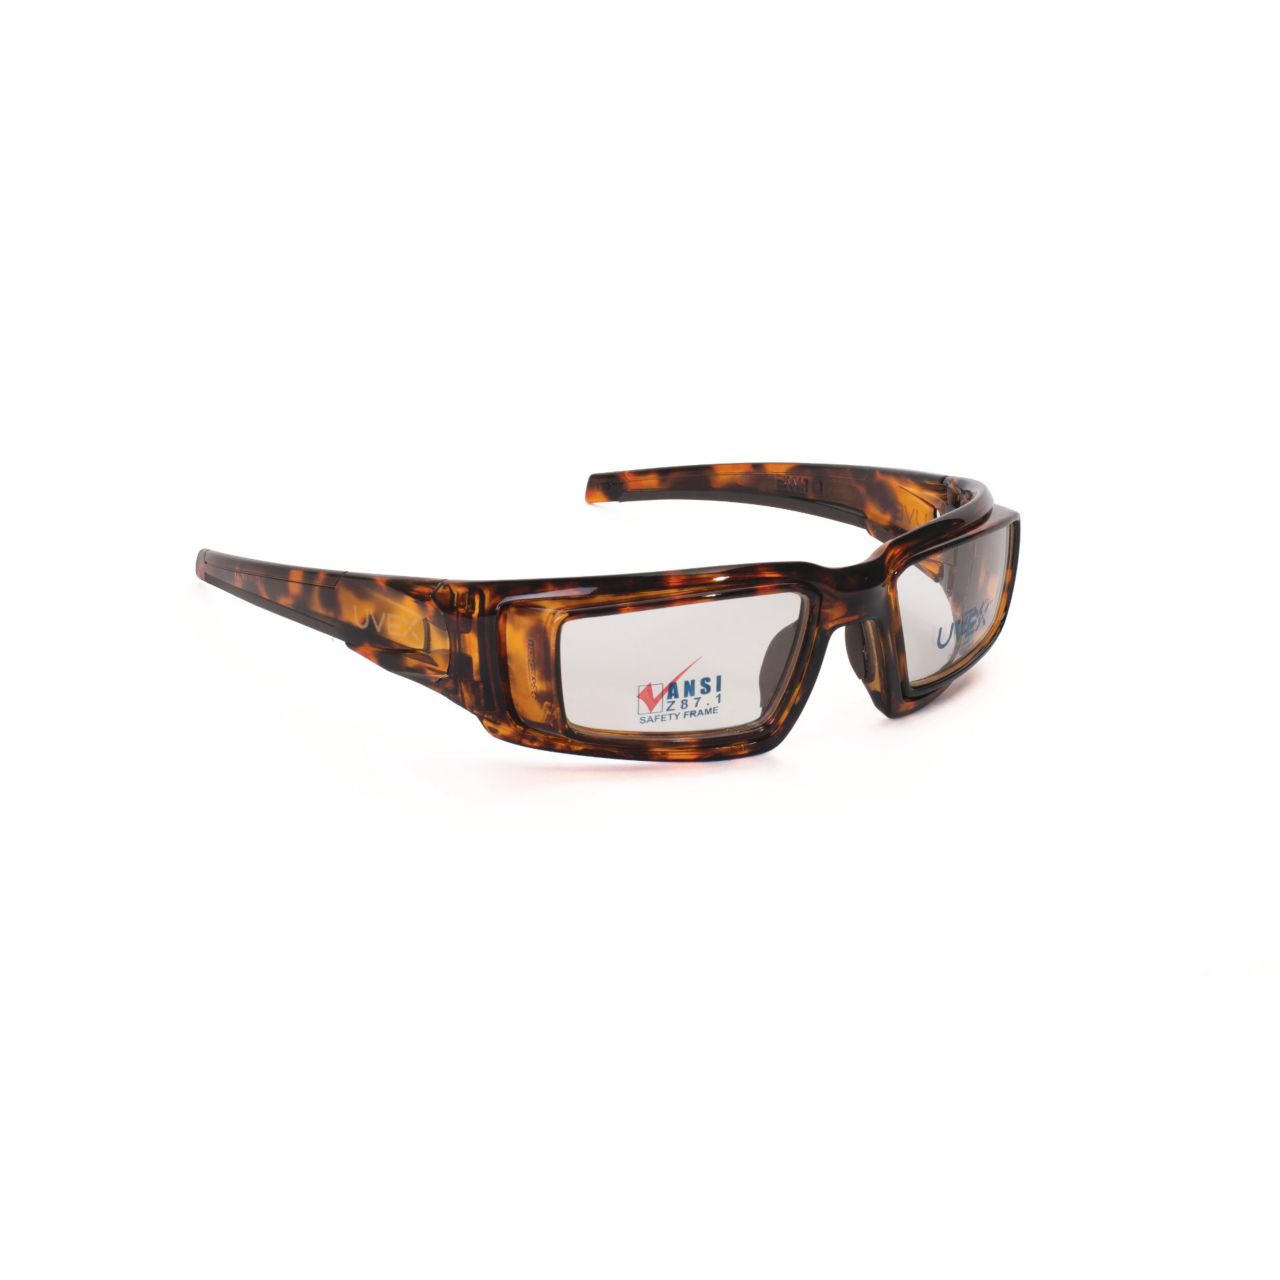 UX_swrx-collection-titmus-sw10_uvex rx sw10 tortoise shell frame 6 base